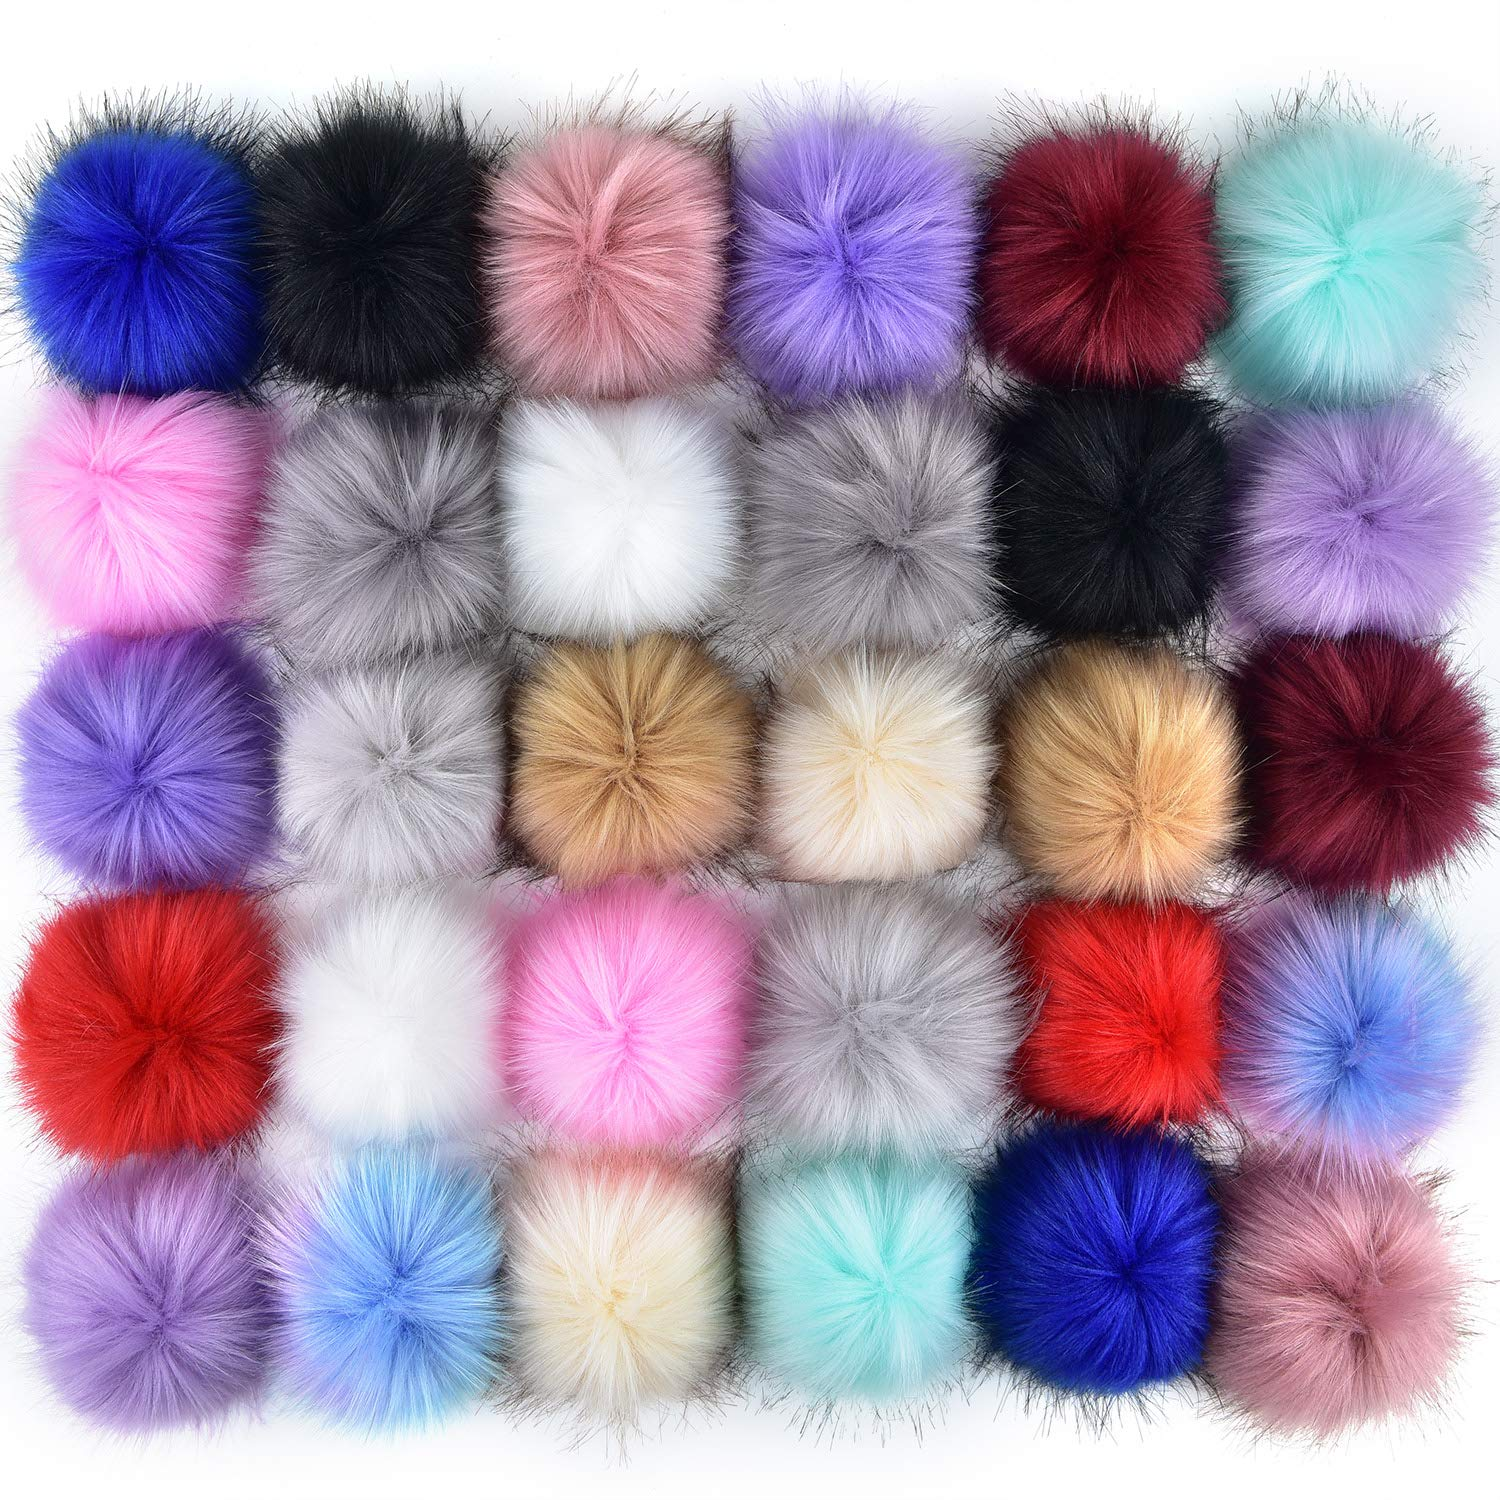 Coopay 30 Pieces Faux Fox Fur Pom Pom Balls DIY Fur Fluffy Pom Pom with Elastic Loop for Hats Keychains Scarves Gloves Bags Charms Knitting Accessories Popular Mix Colors